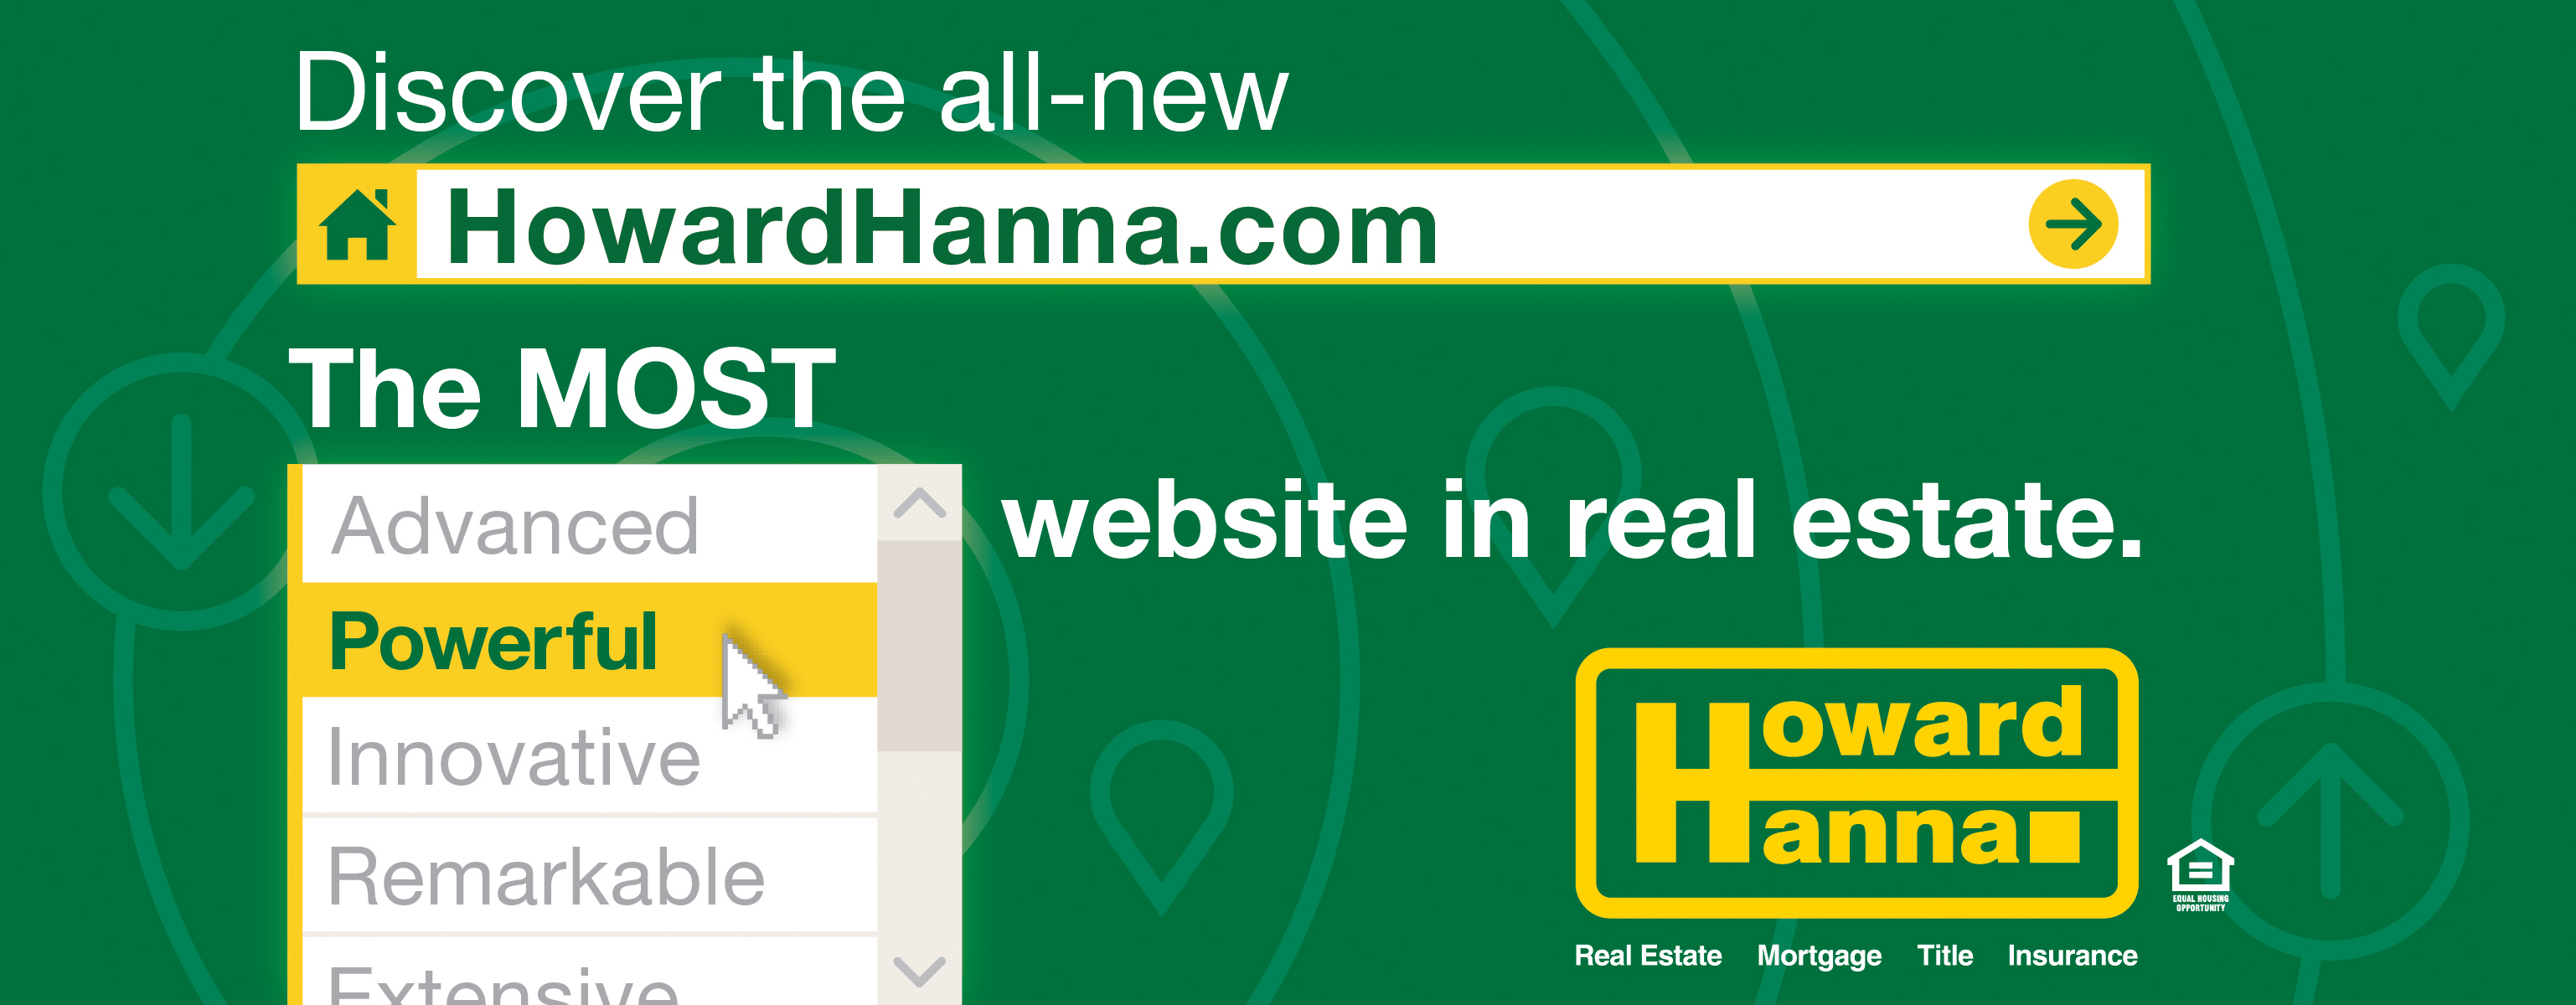 HowardHanna.com